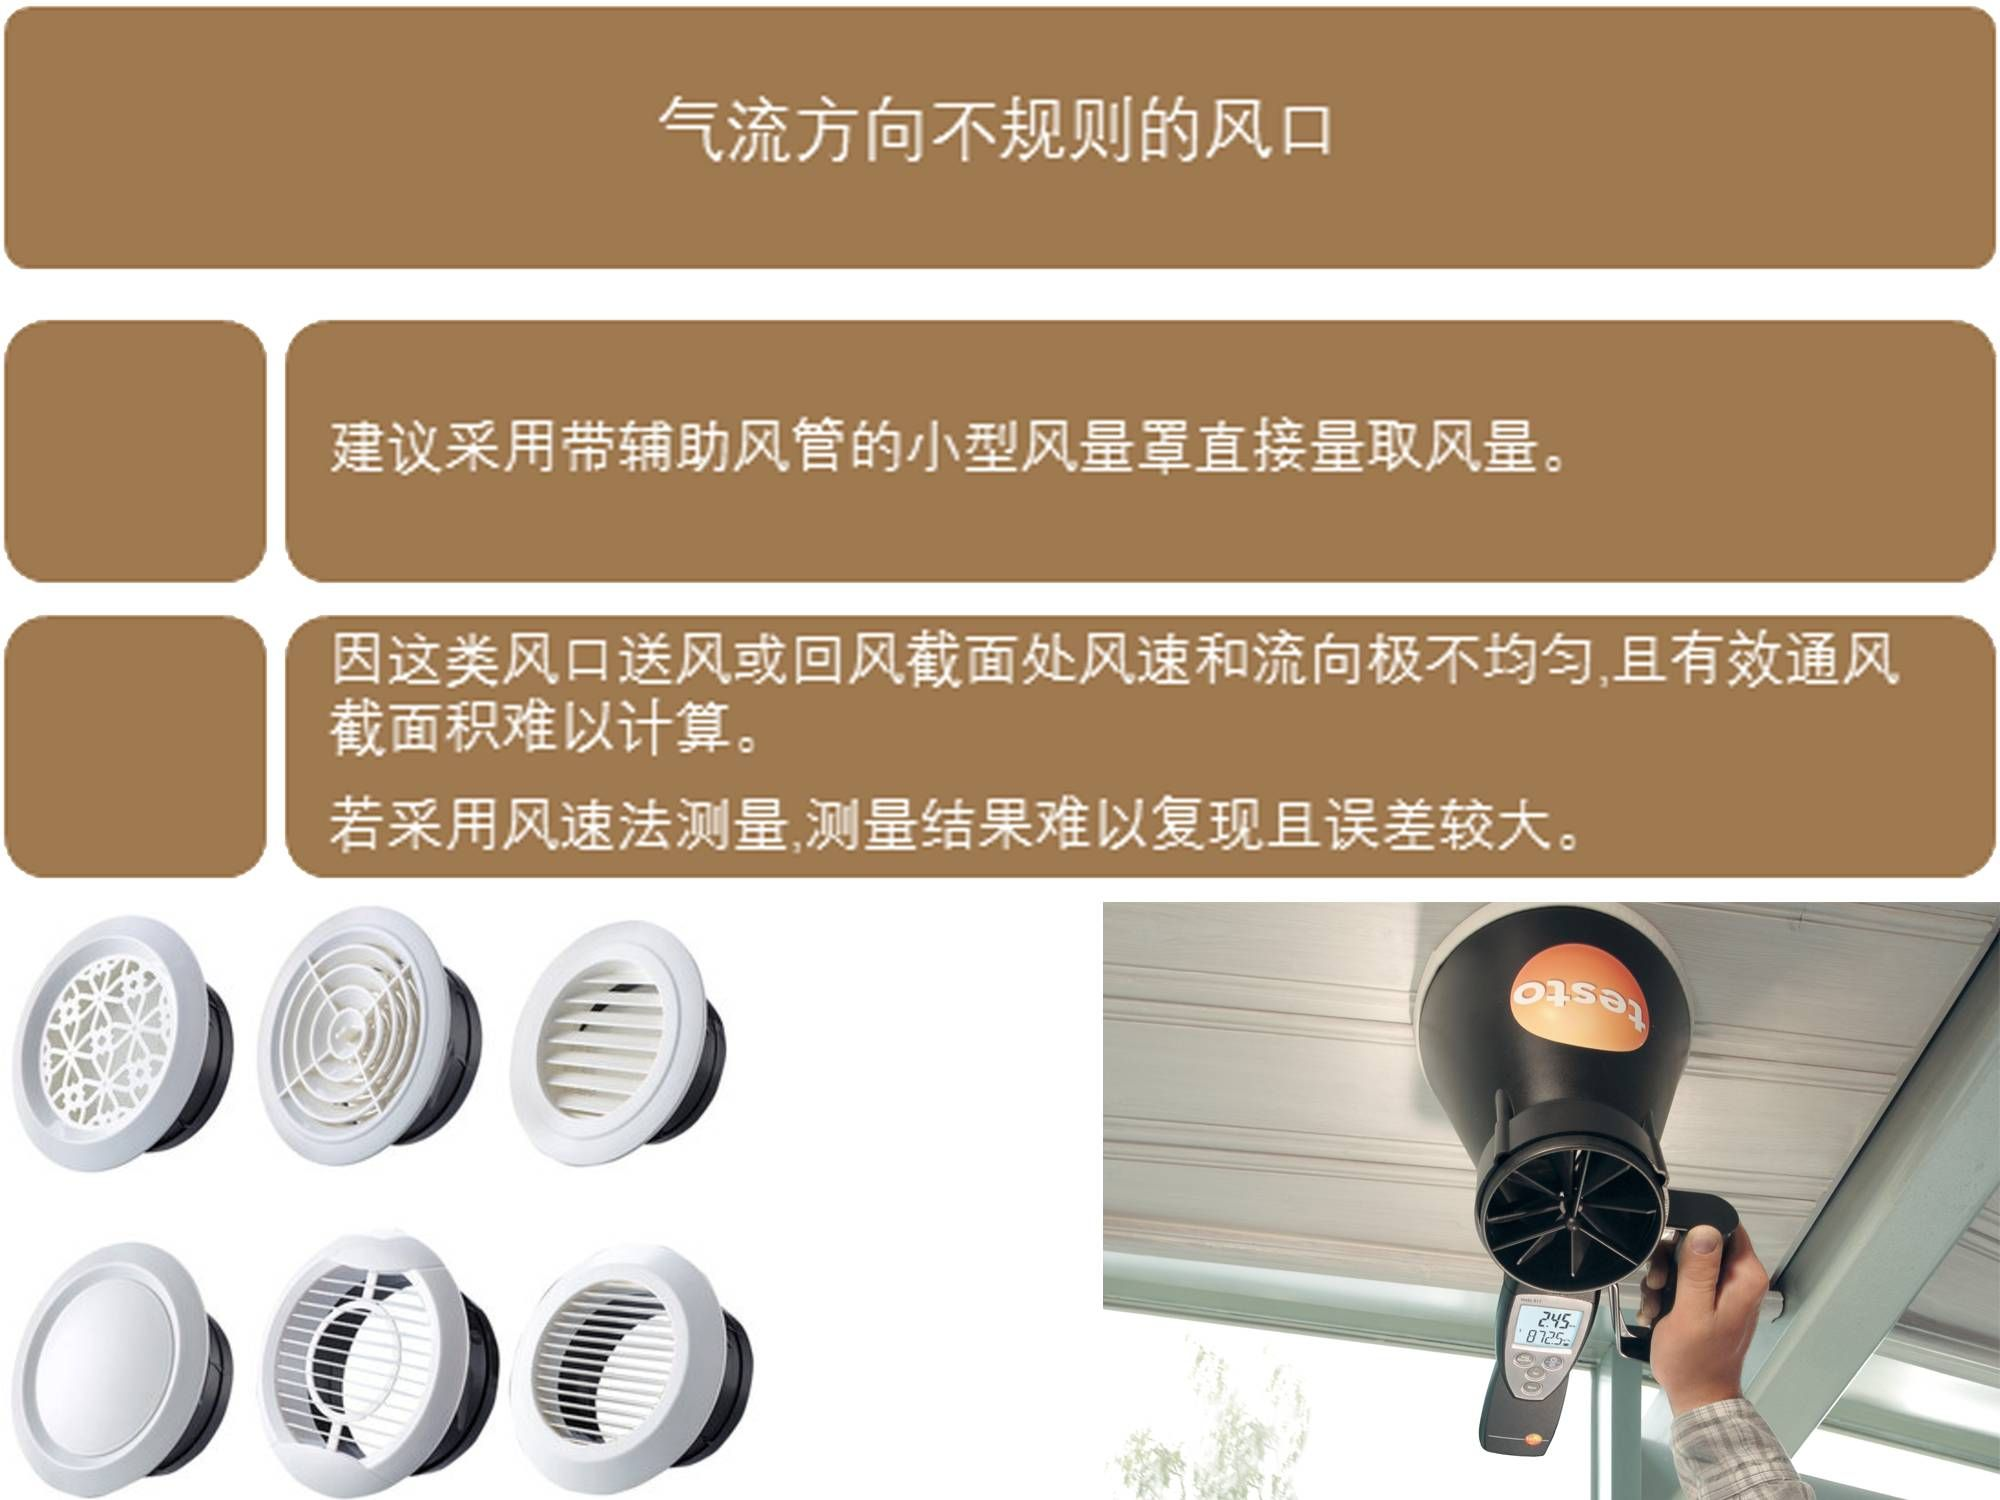 cn_applications_hvacr_outlets-image04.png